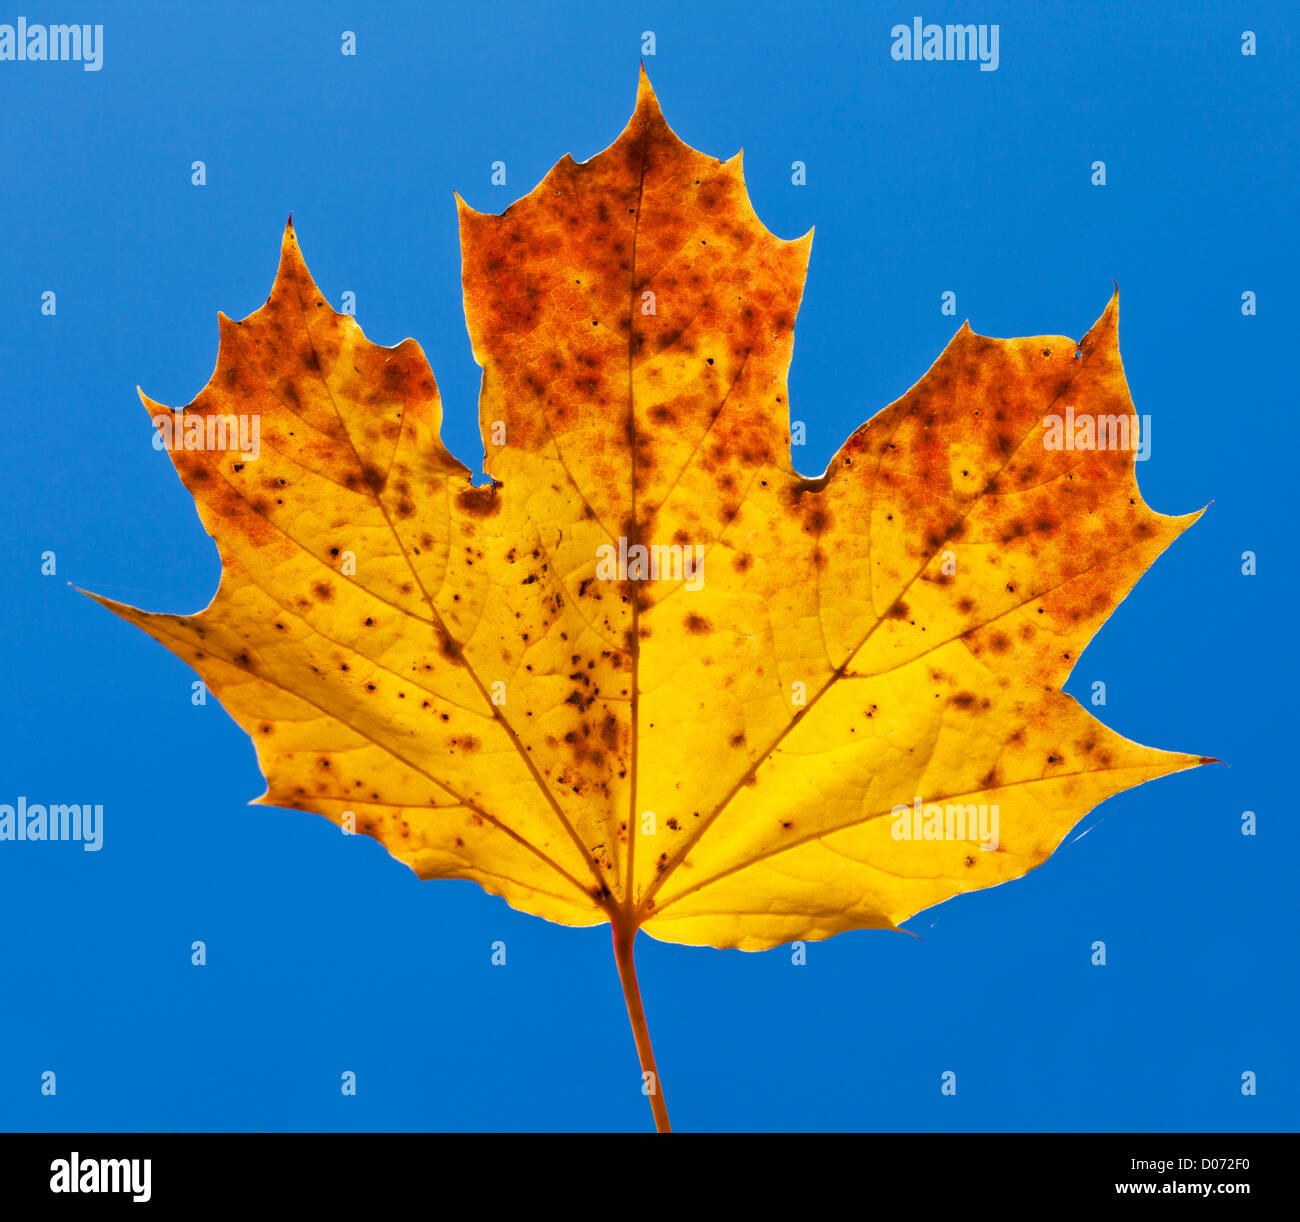 Automne Feuilles sycomore close up against blue sky Photo Stock